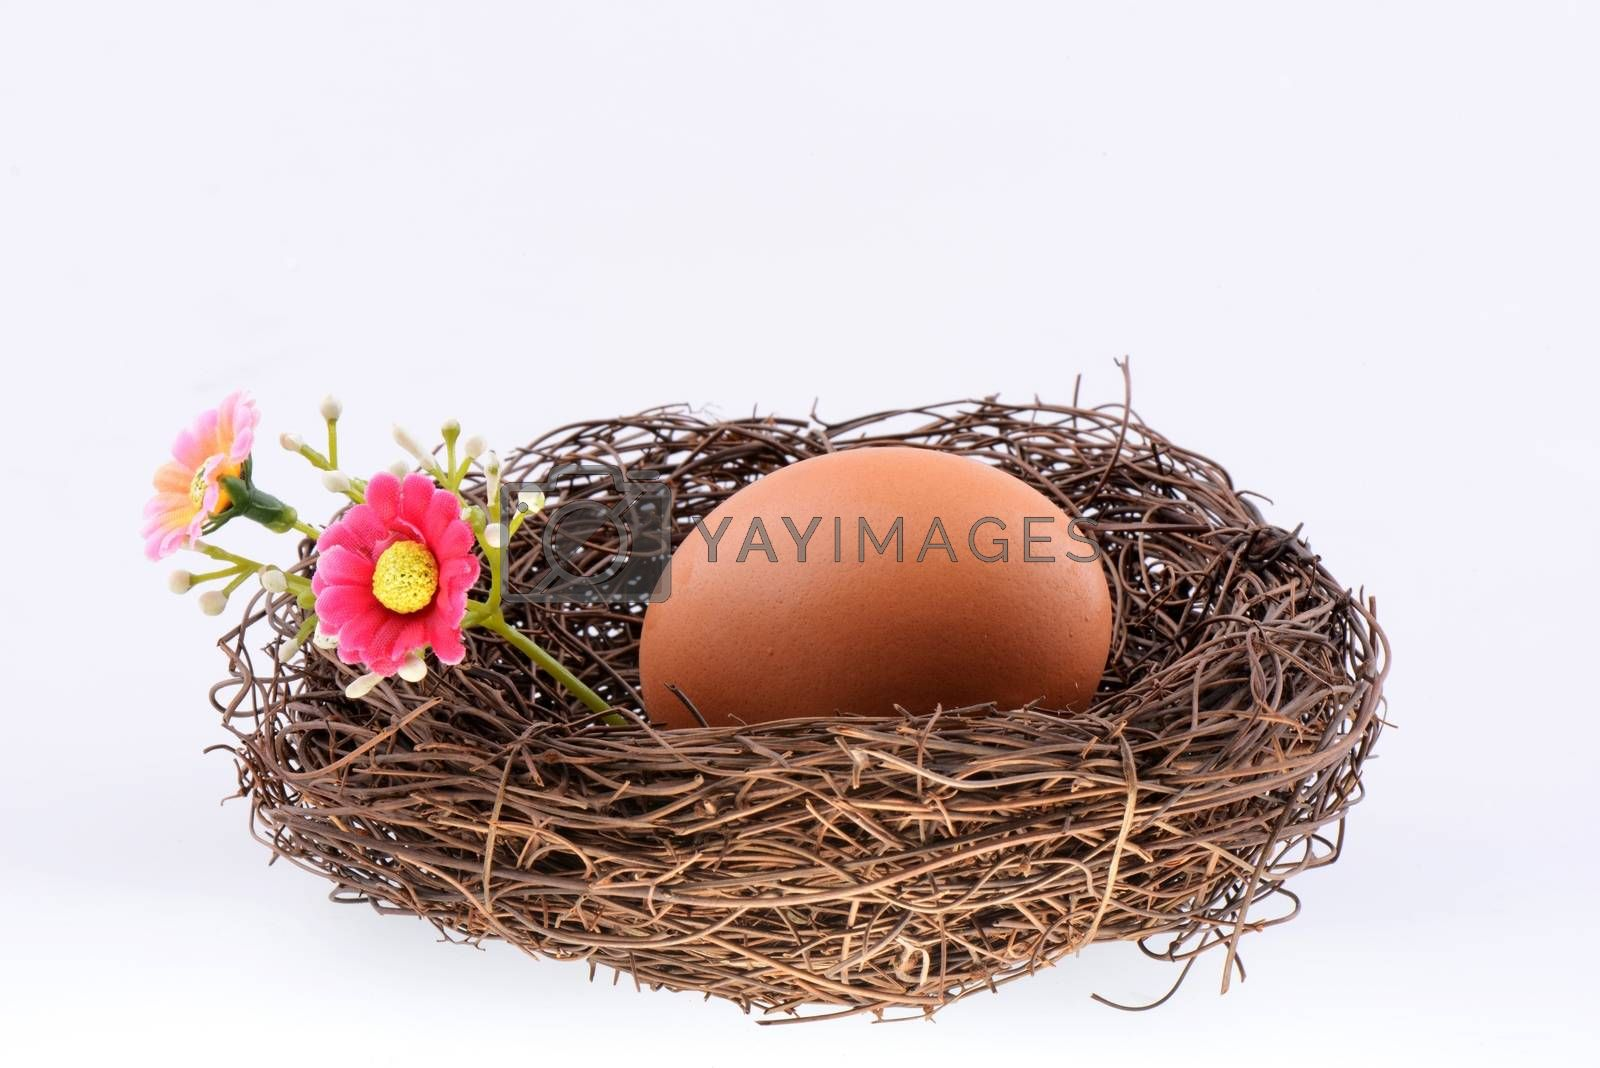 Bird's nest with an egg isolated on a white background